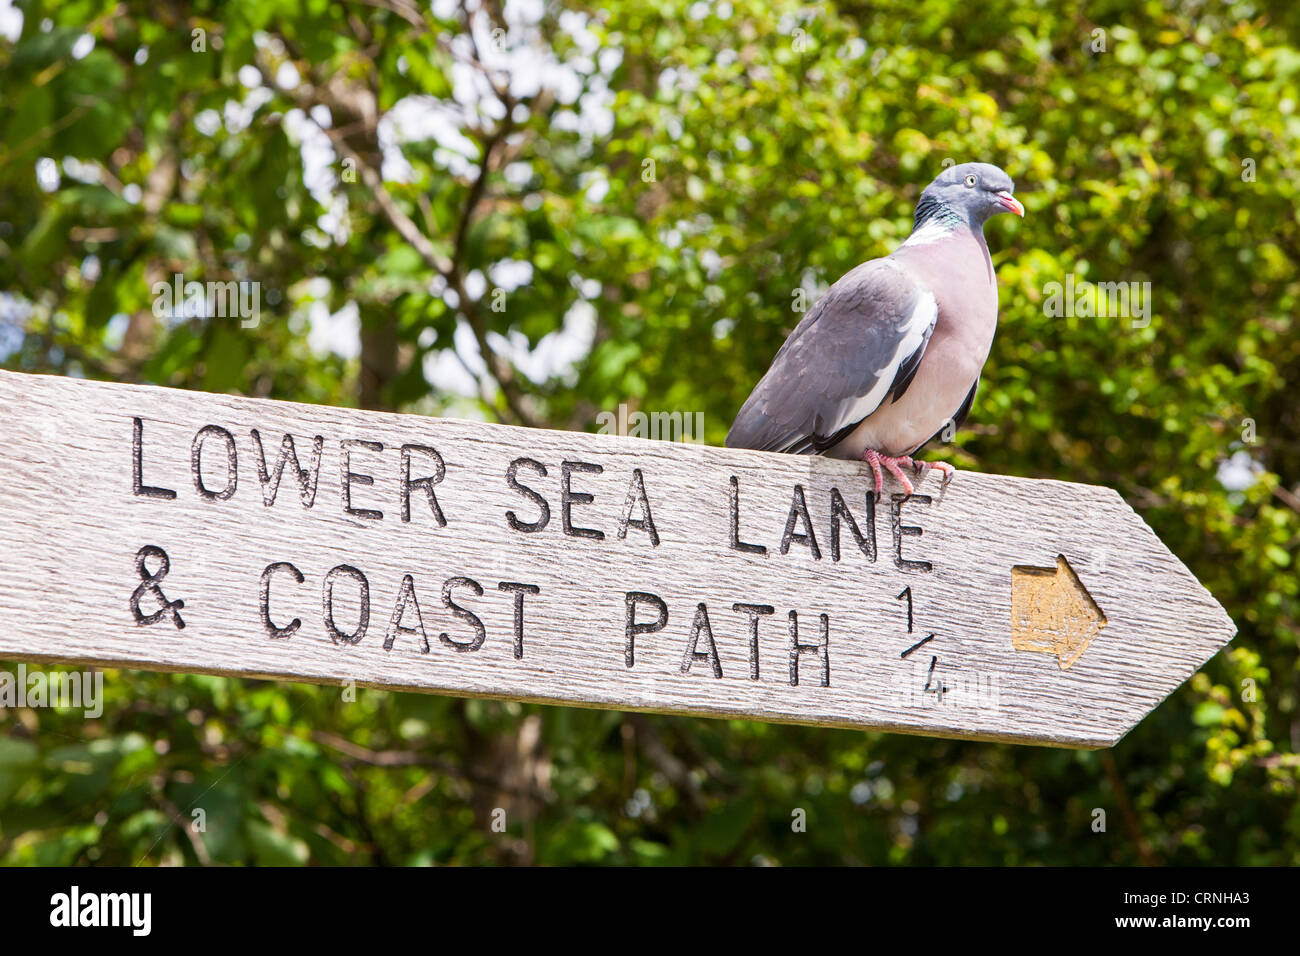 A Wood Pigeon (Columba palumbus) sits on a signpost pointing to Lower Sea Lane in Charrmouth, Dorset, UK, - Stock Image